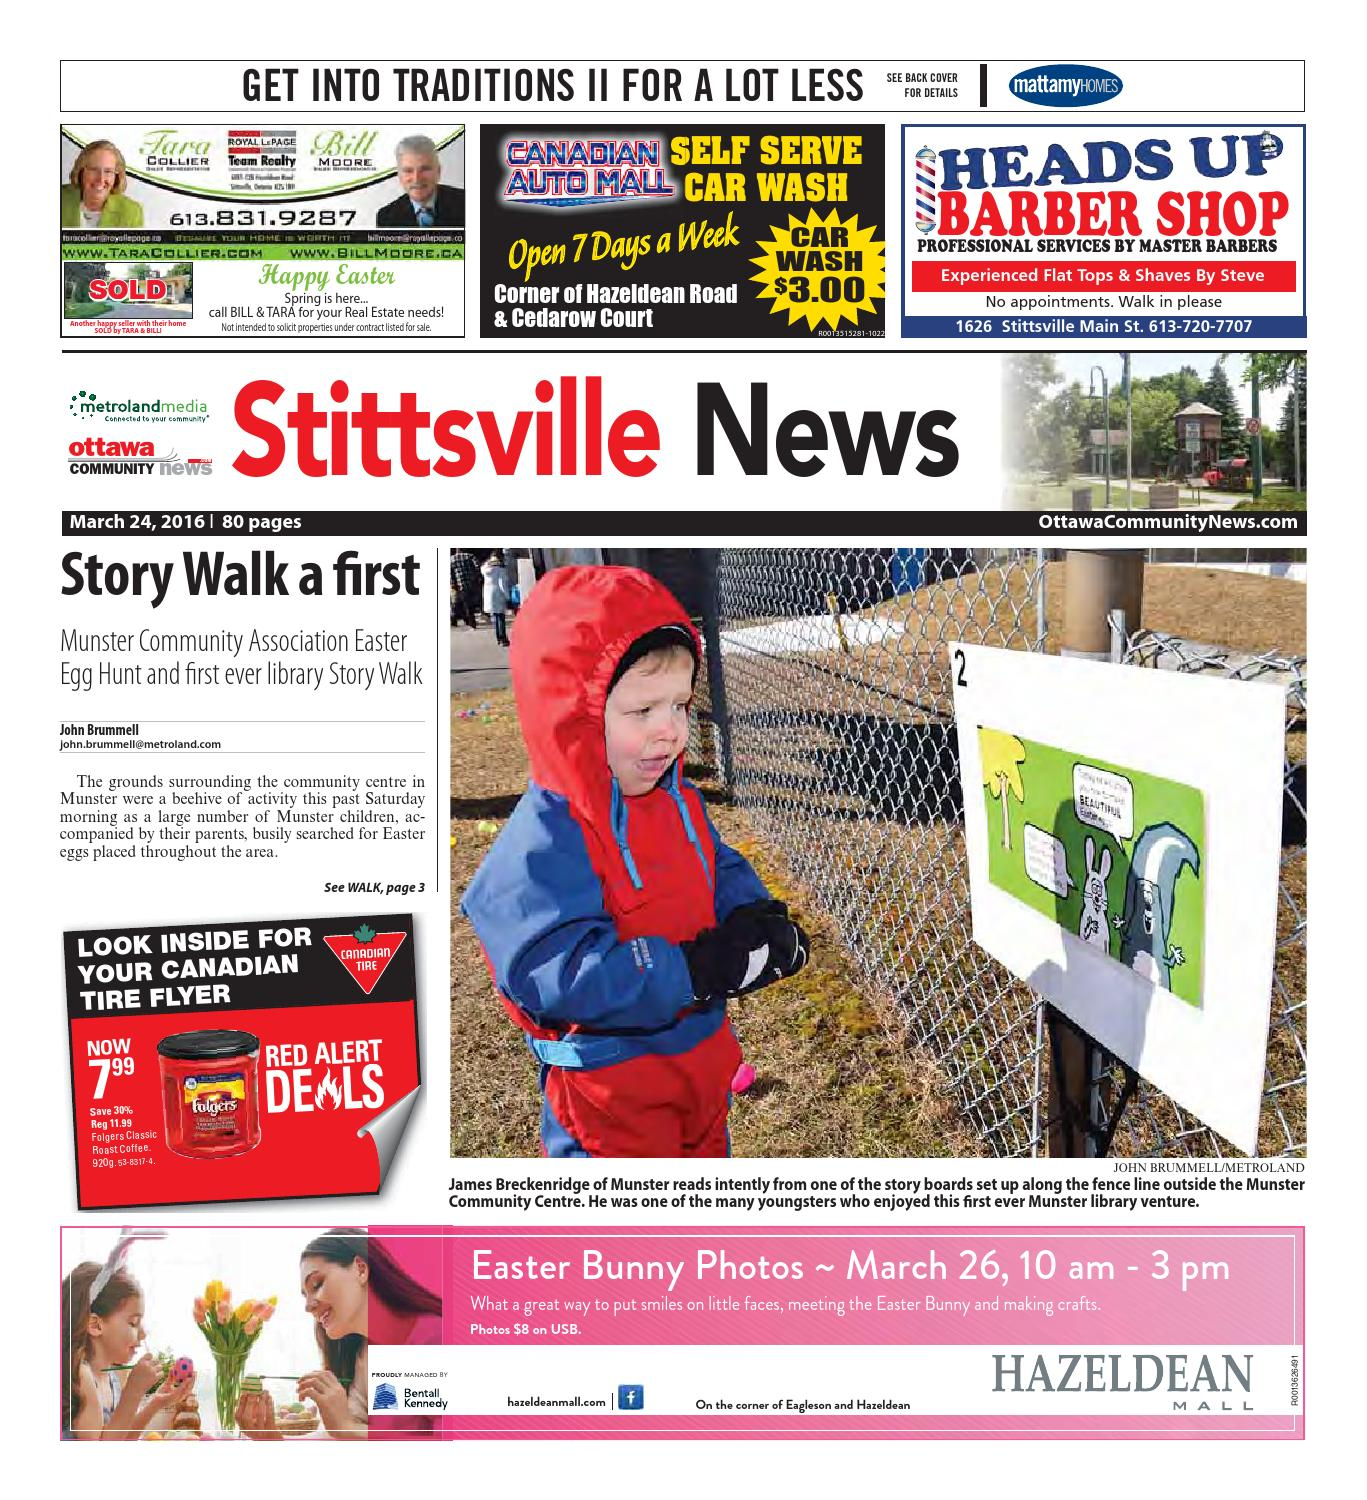 Pouf Exterieur Canadian Tire Stittsville032416 By Metroland East Stittsville News Issuu